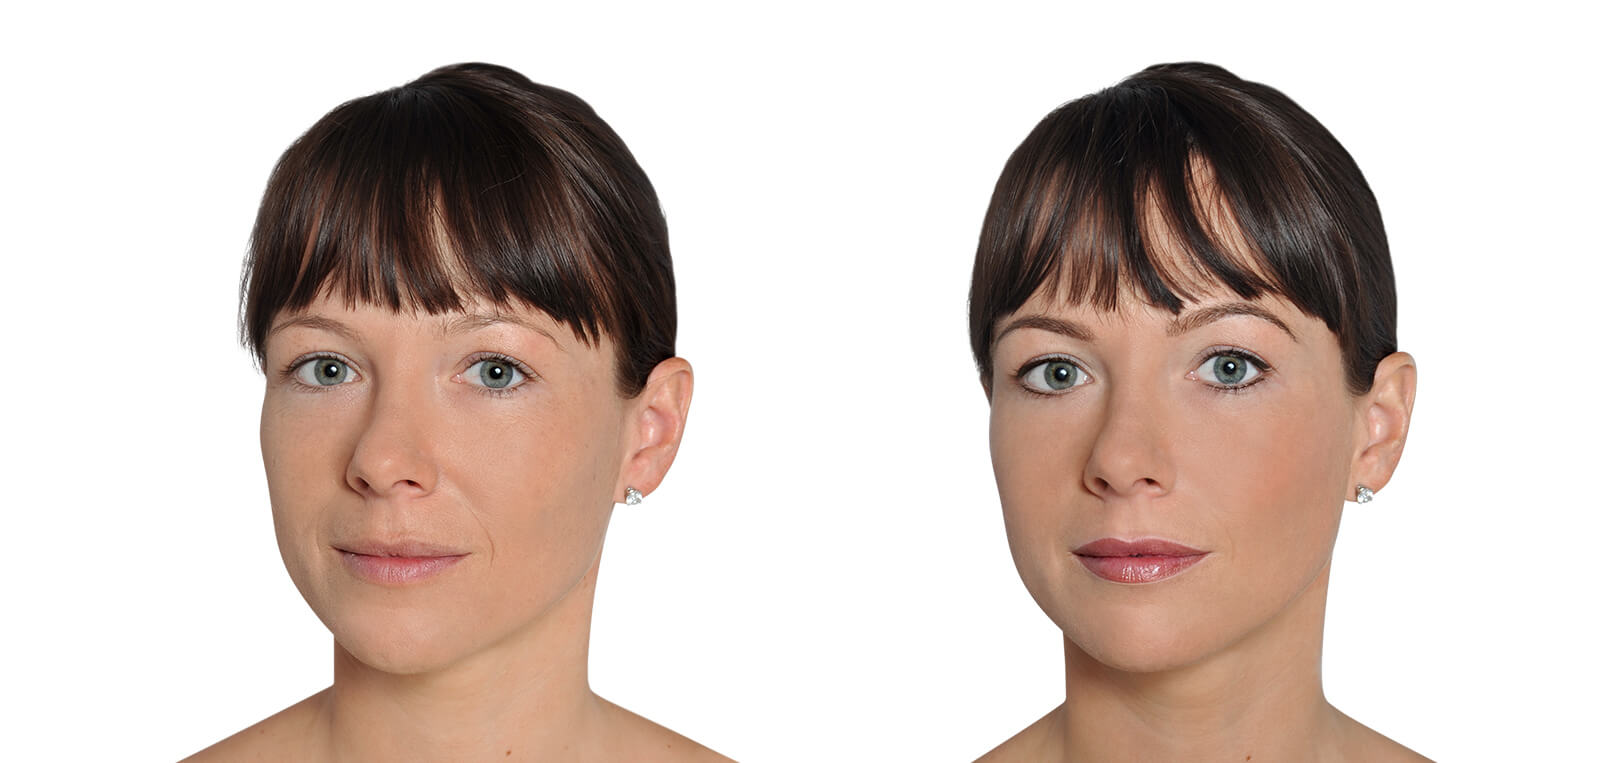 Permanent Make-Up Bilder Damen 01 nachher | Der Jungbrunnen Aichach